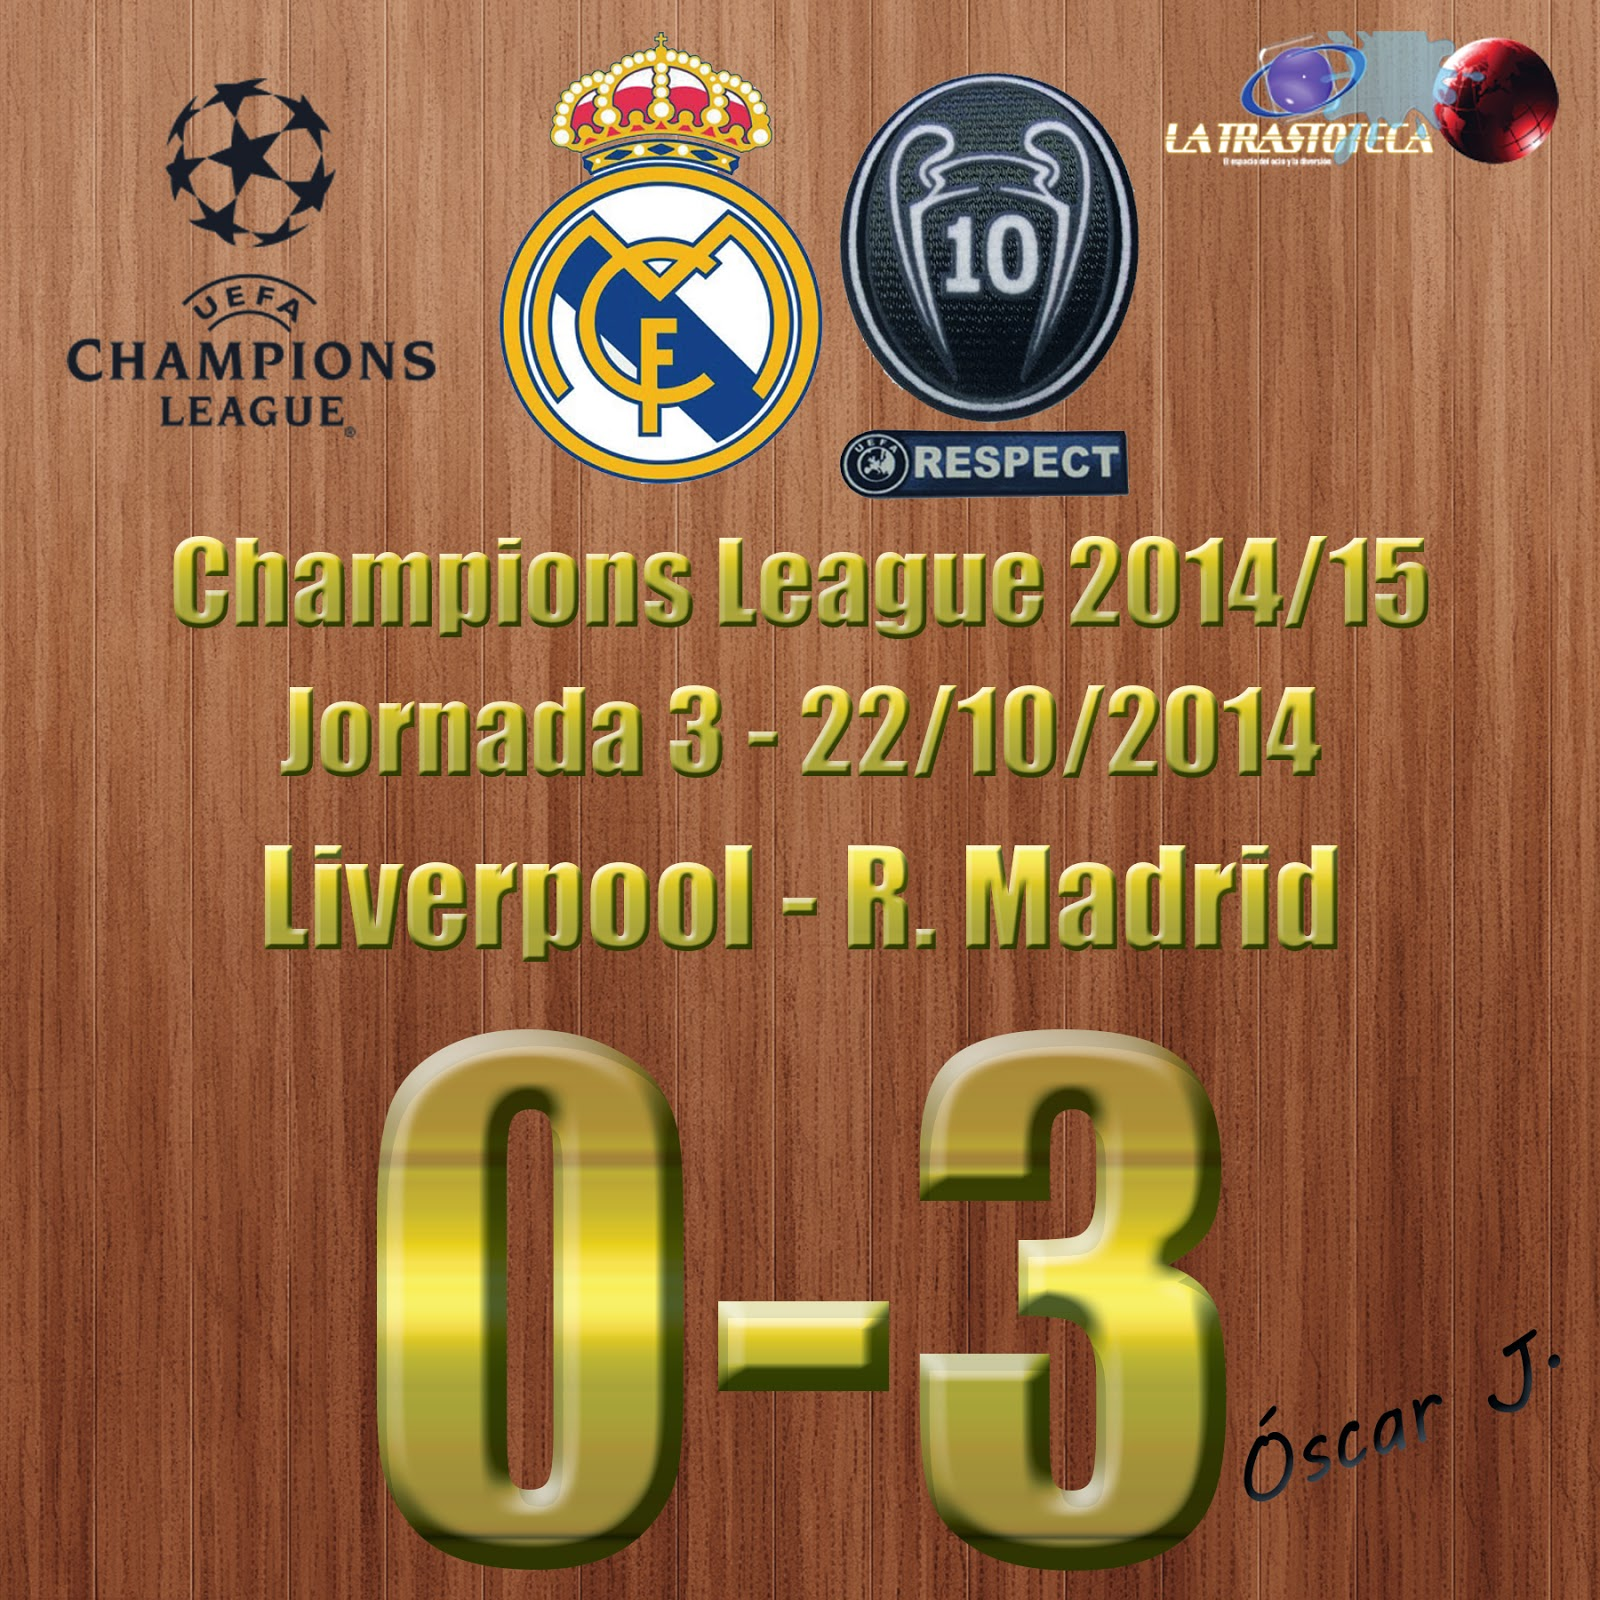 Liverpool 0-3 Real Madrid - Champions League 2014/15 - Jornada 3 (22/10/2014) - Doblete de Benzema